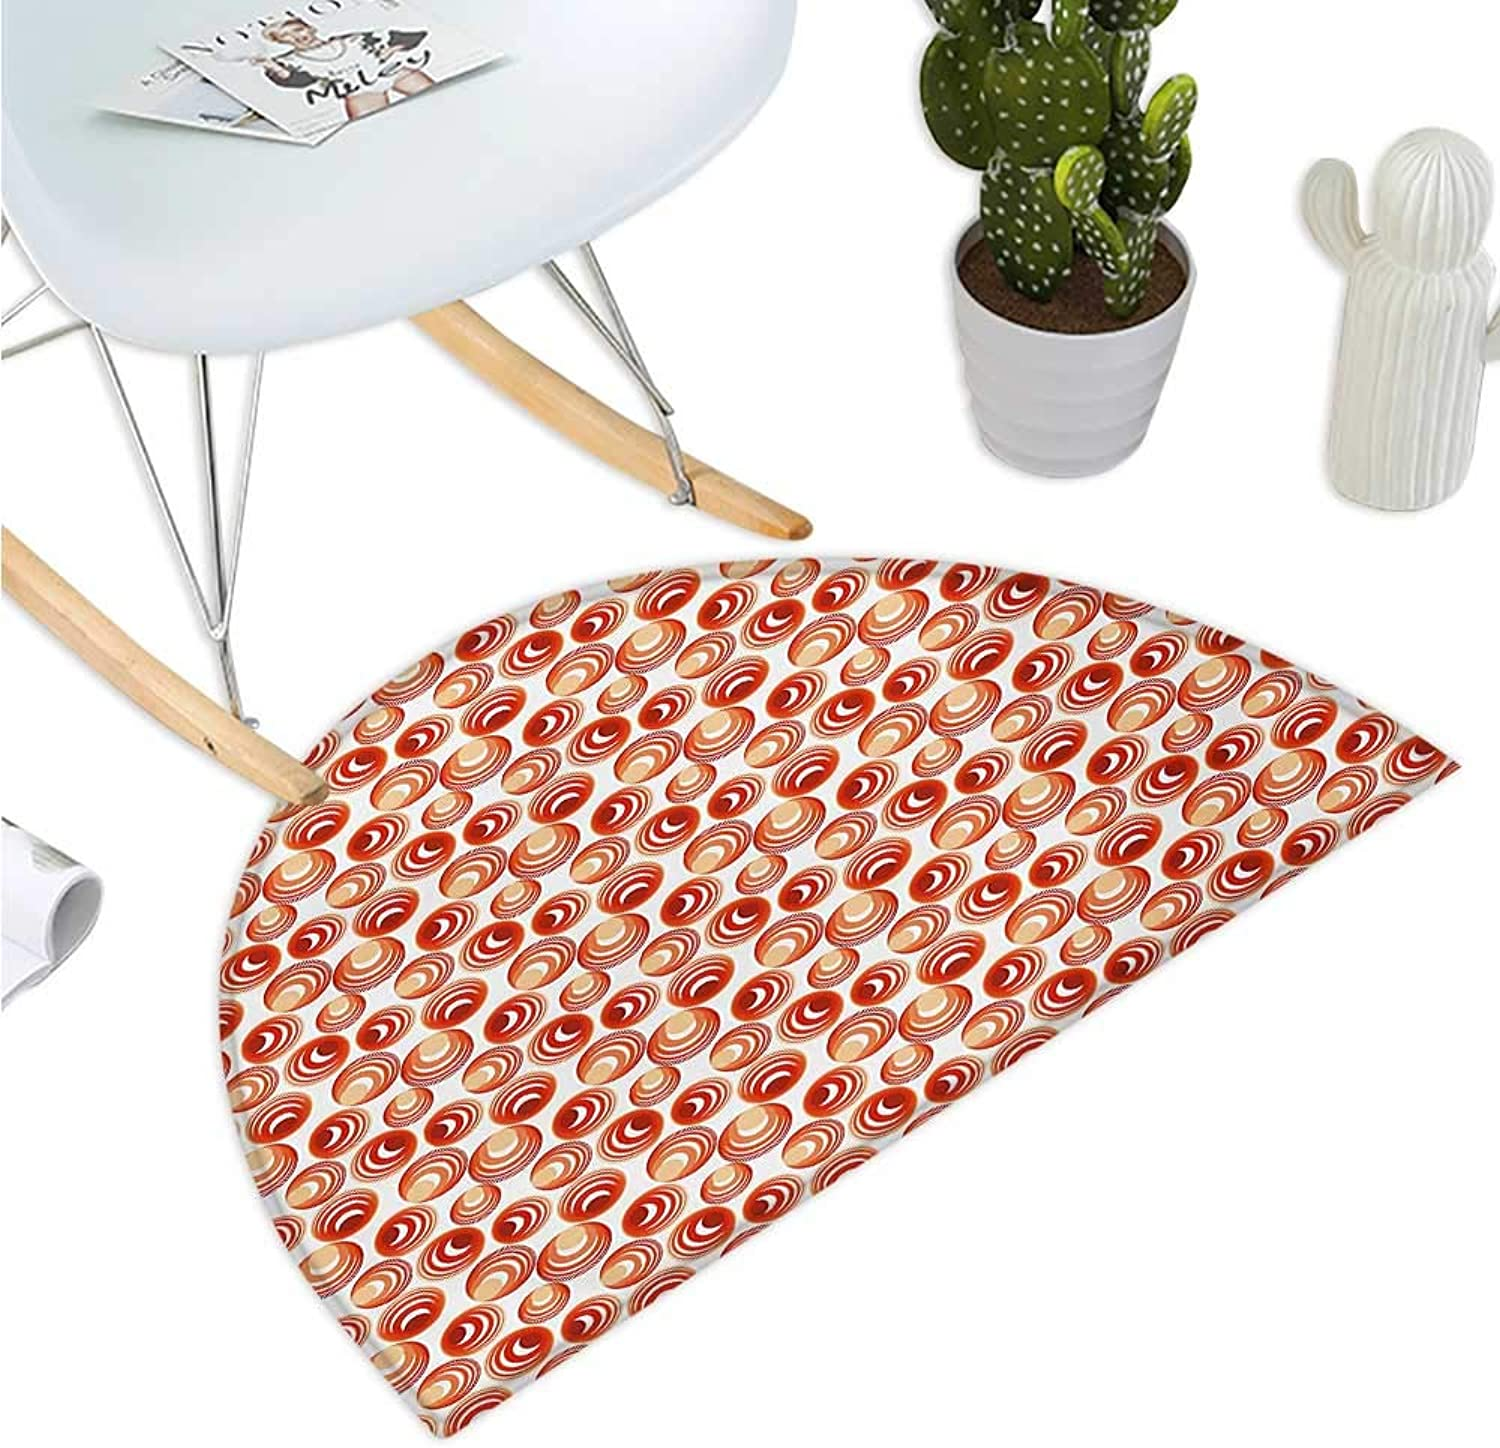 Red Semicircular Cushion Geometric Circles Rounds Vintage Retro Design Image on White Backdrop Entry Door Mat H 39.3  xD 59  Scarlet Vermilion and Ruby